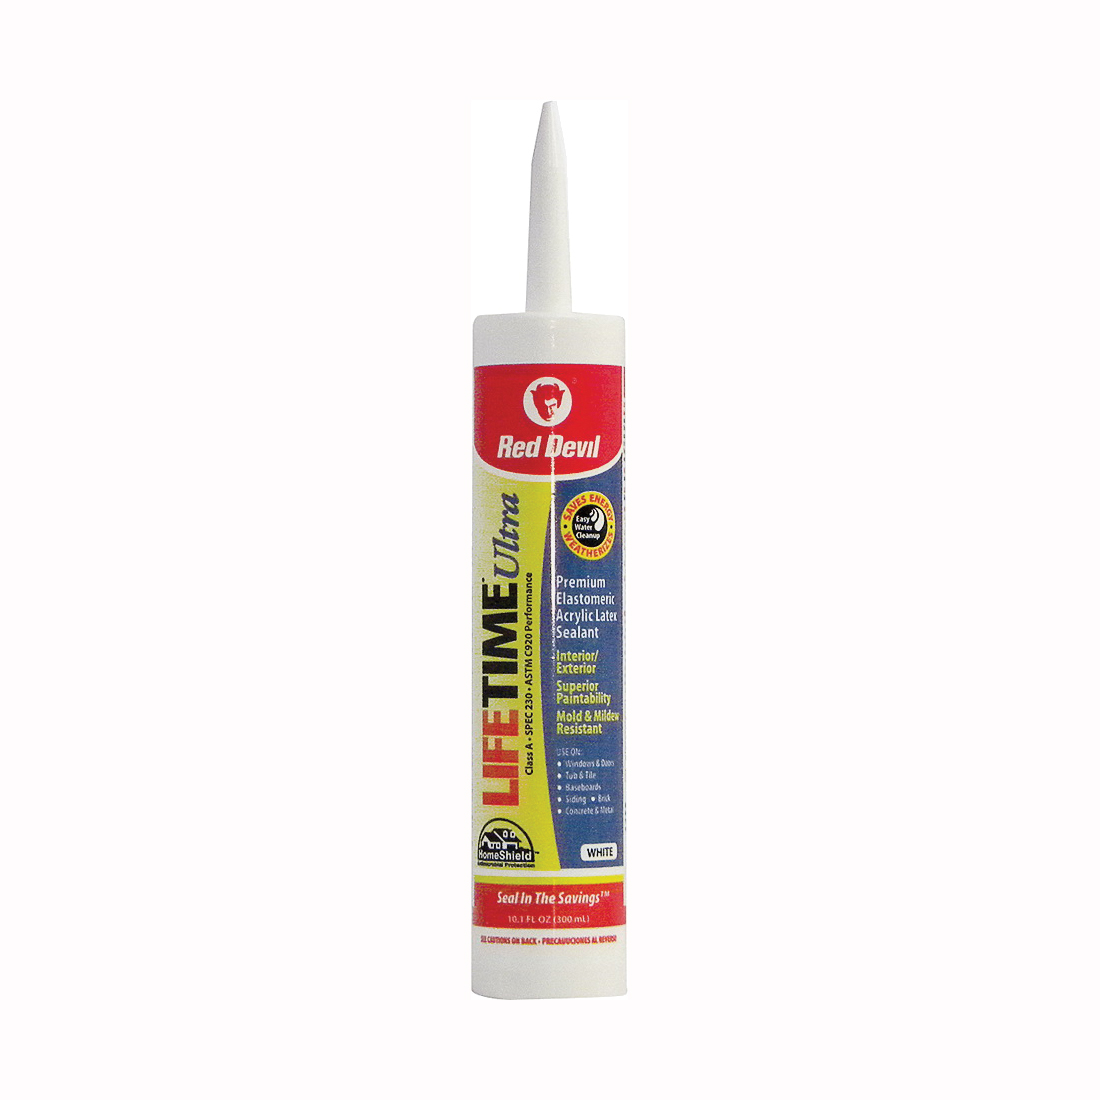 Picture of Red Devil Lifetime 0770 Acrylic Sealant, White, 40 to 90 deg F, 10.1 fl-oz Package, Cartridge